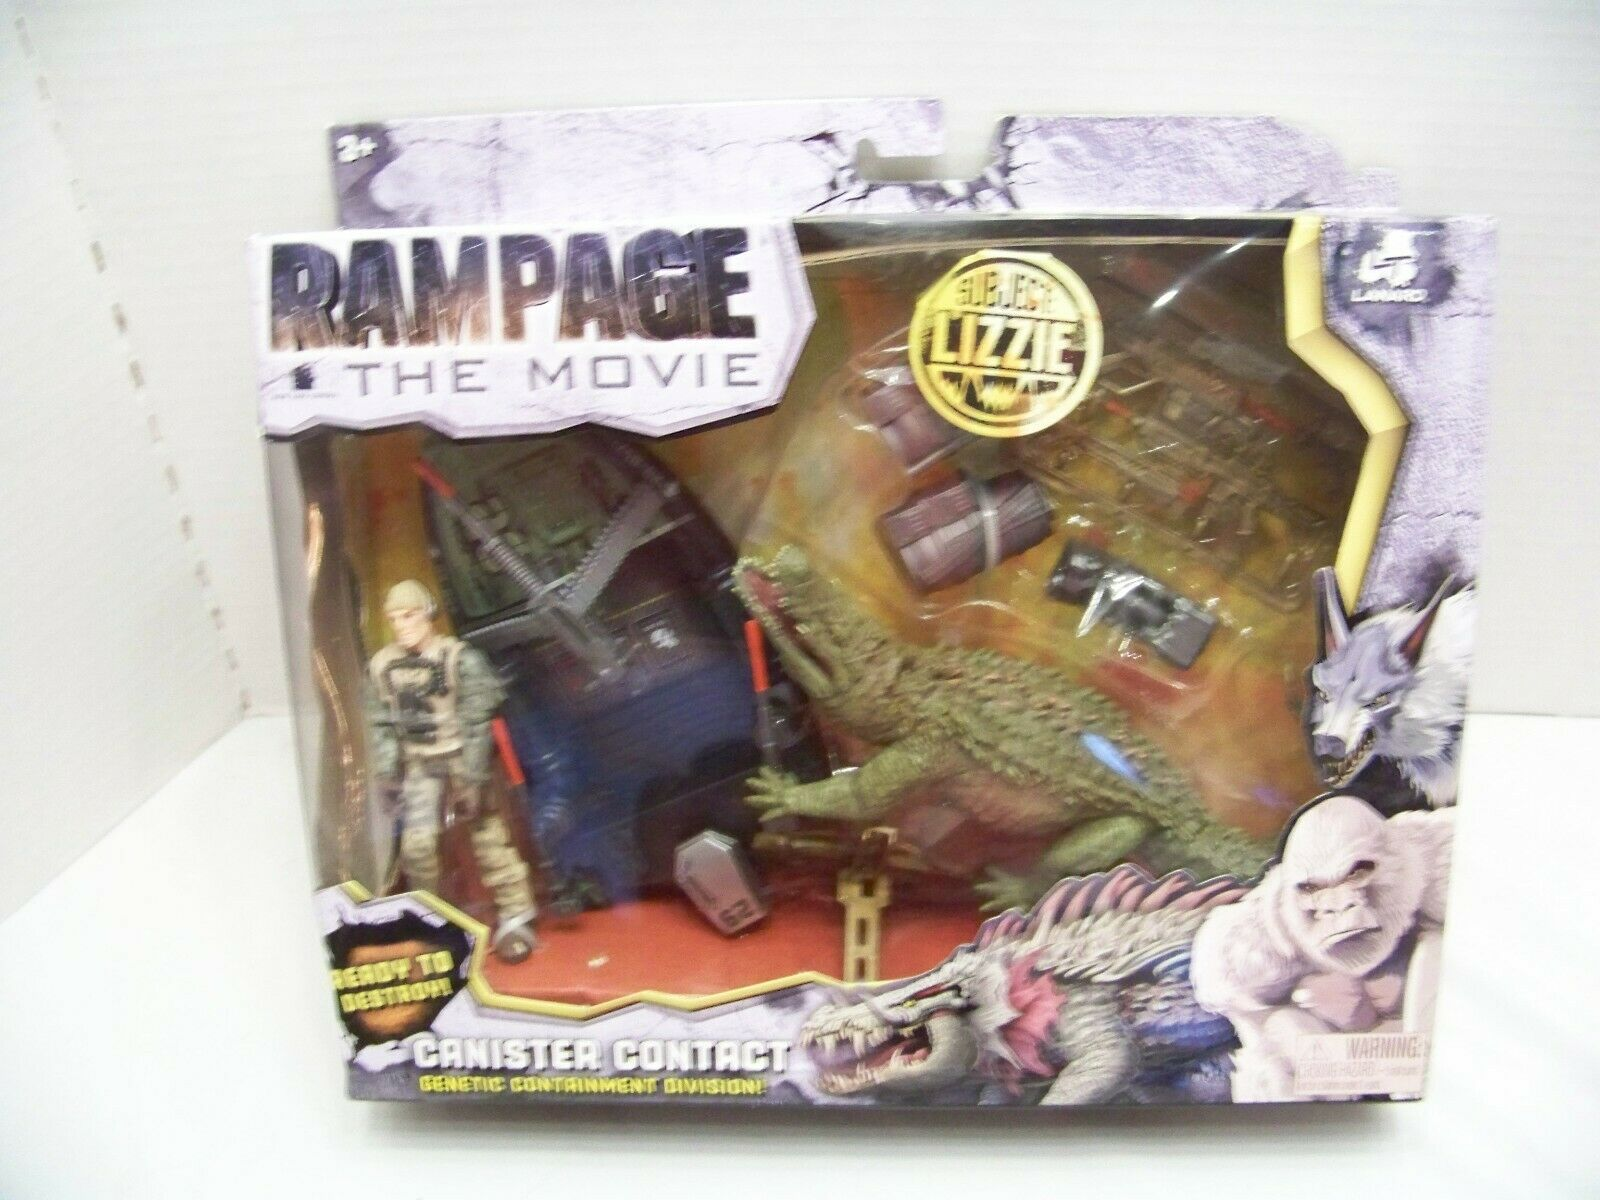 RAMPAGE THE MOVIE CANISTER CONTACT SUBJECT LIZZIE. LANARD giocattoli. nuovo.